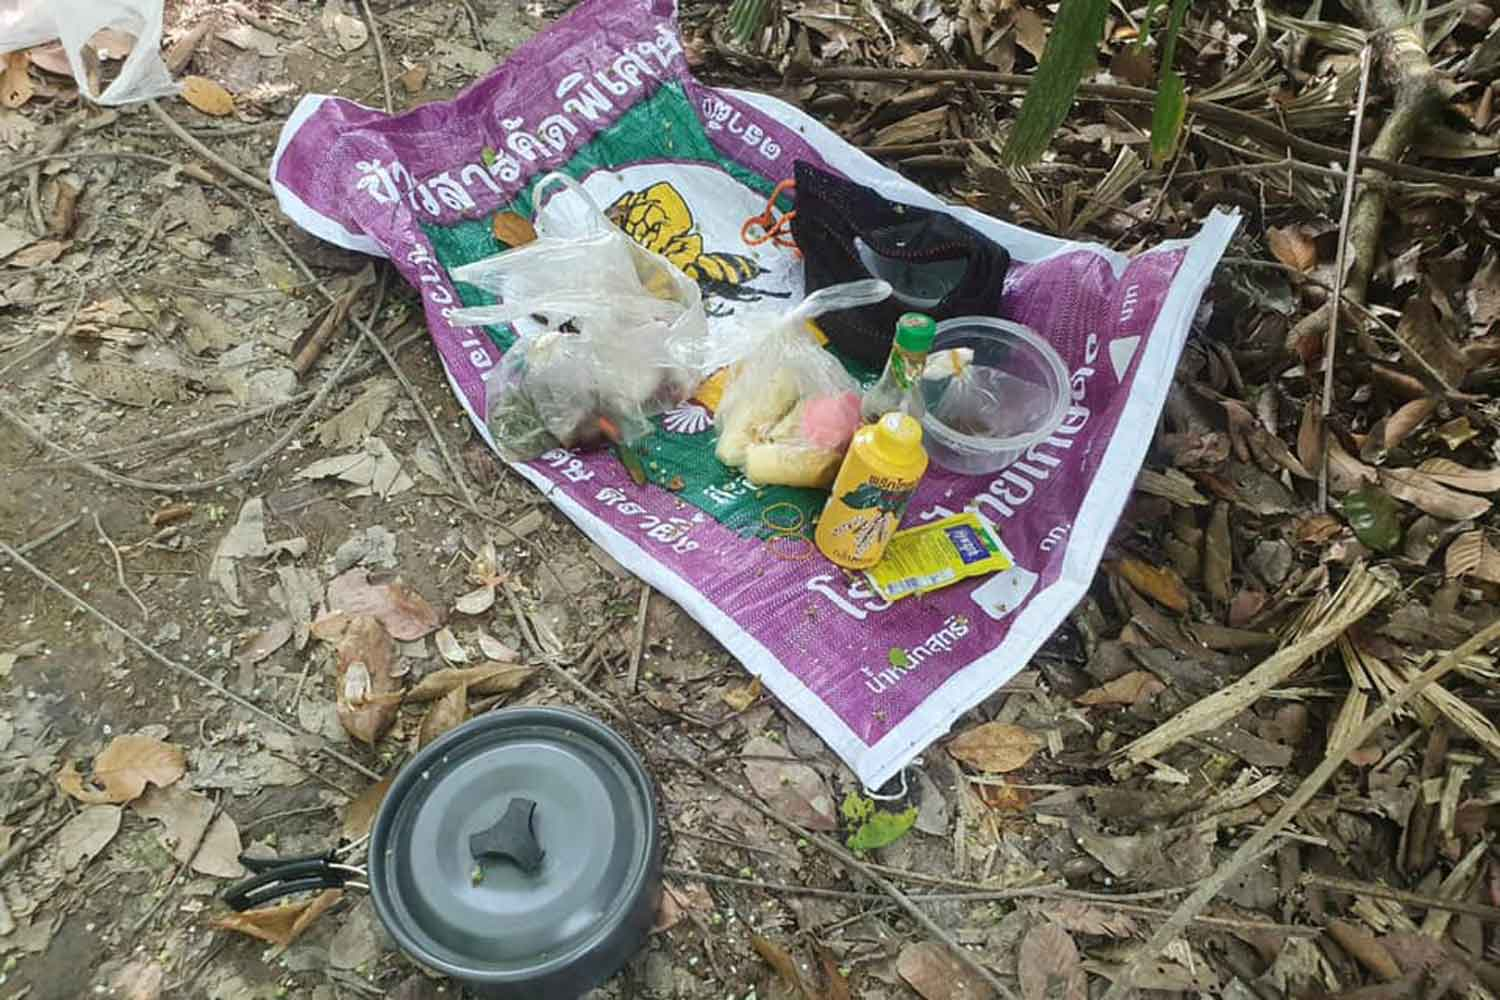 Abandoned food found at a temporary insurgent camp following a clash in Pattani's Sai Buri district on Tuesday. (Photo: Abdullah Benjakat)